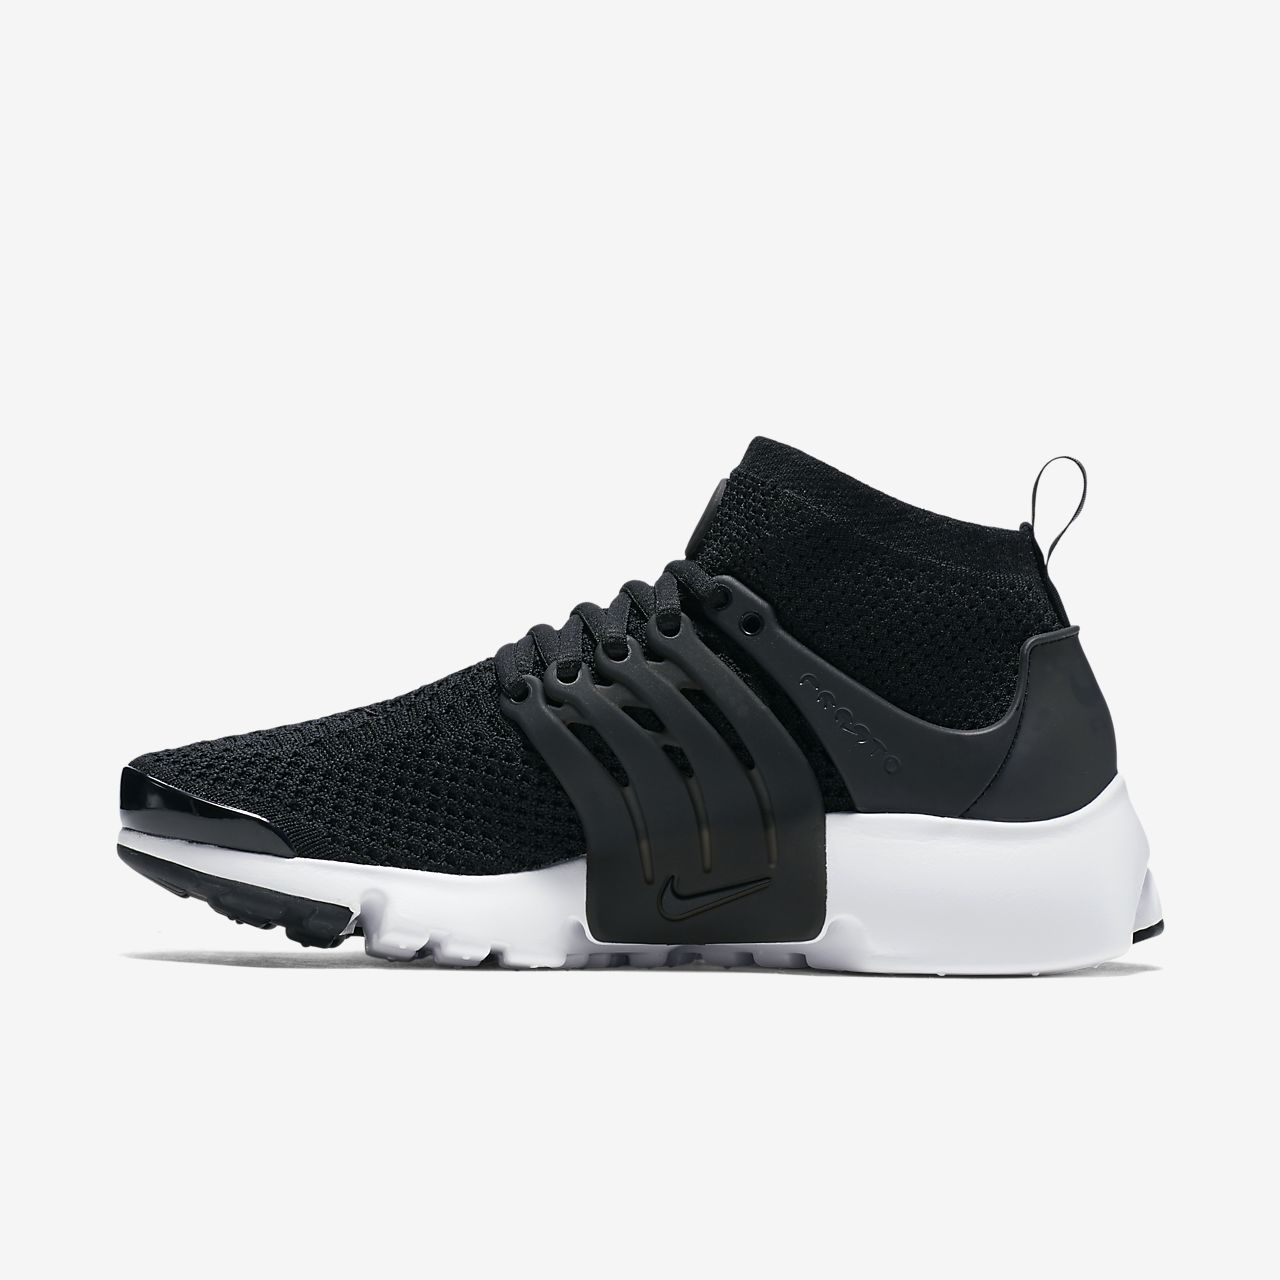 Nike Air Presto Ultra Flyknit Womens Shoe